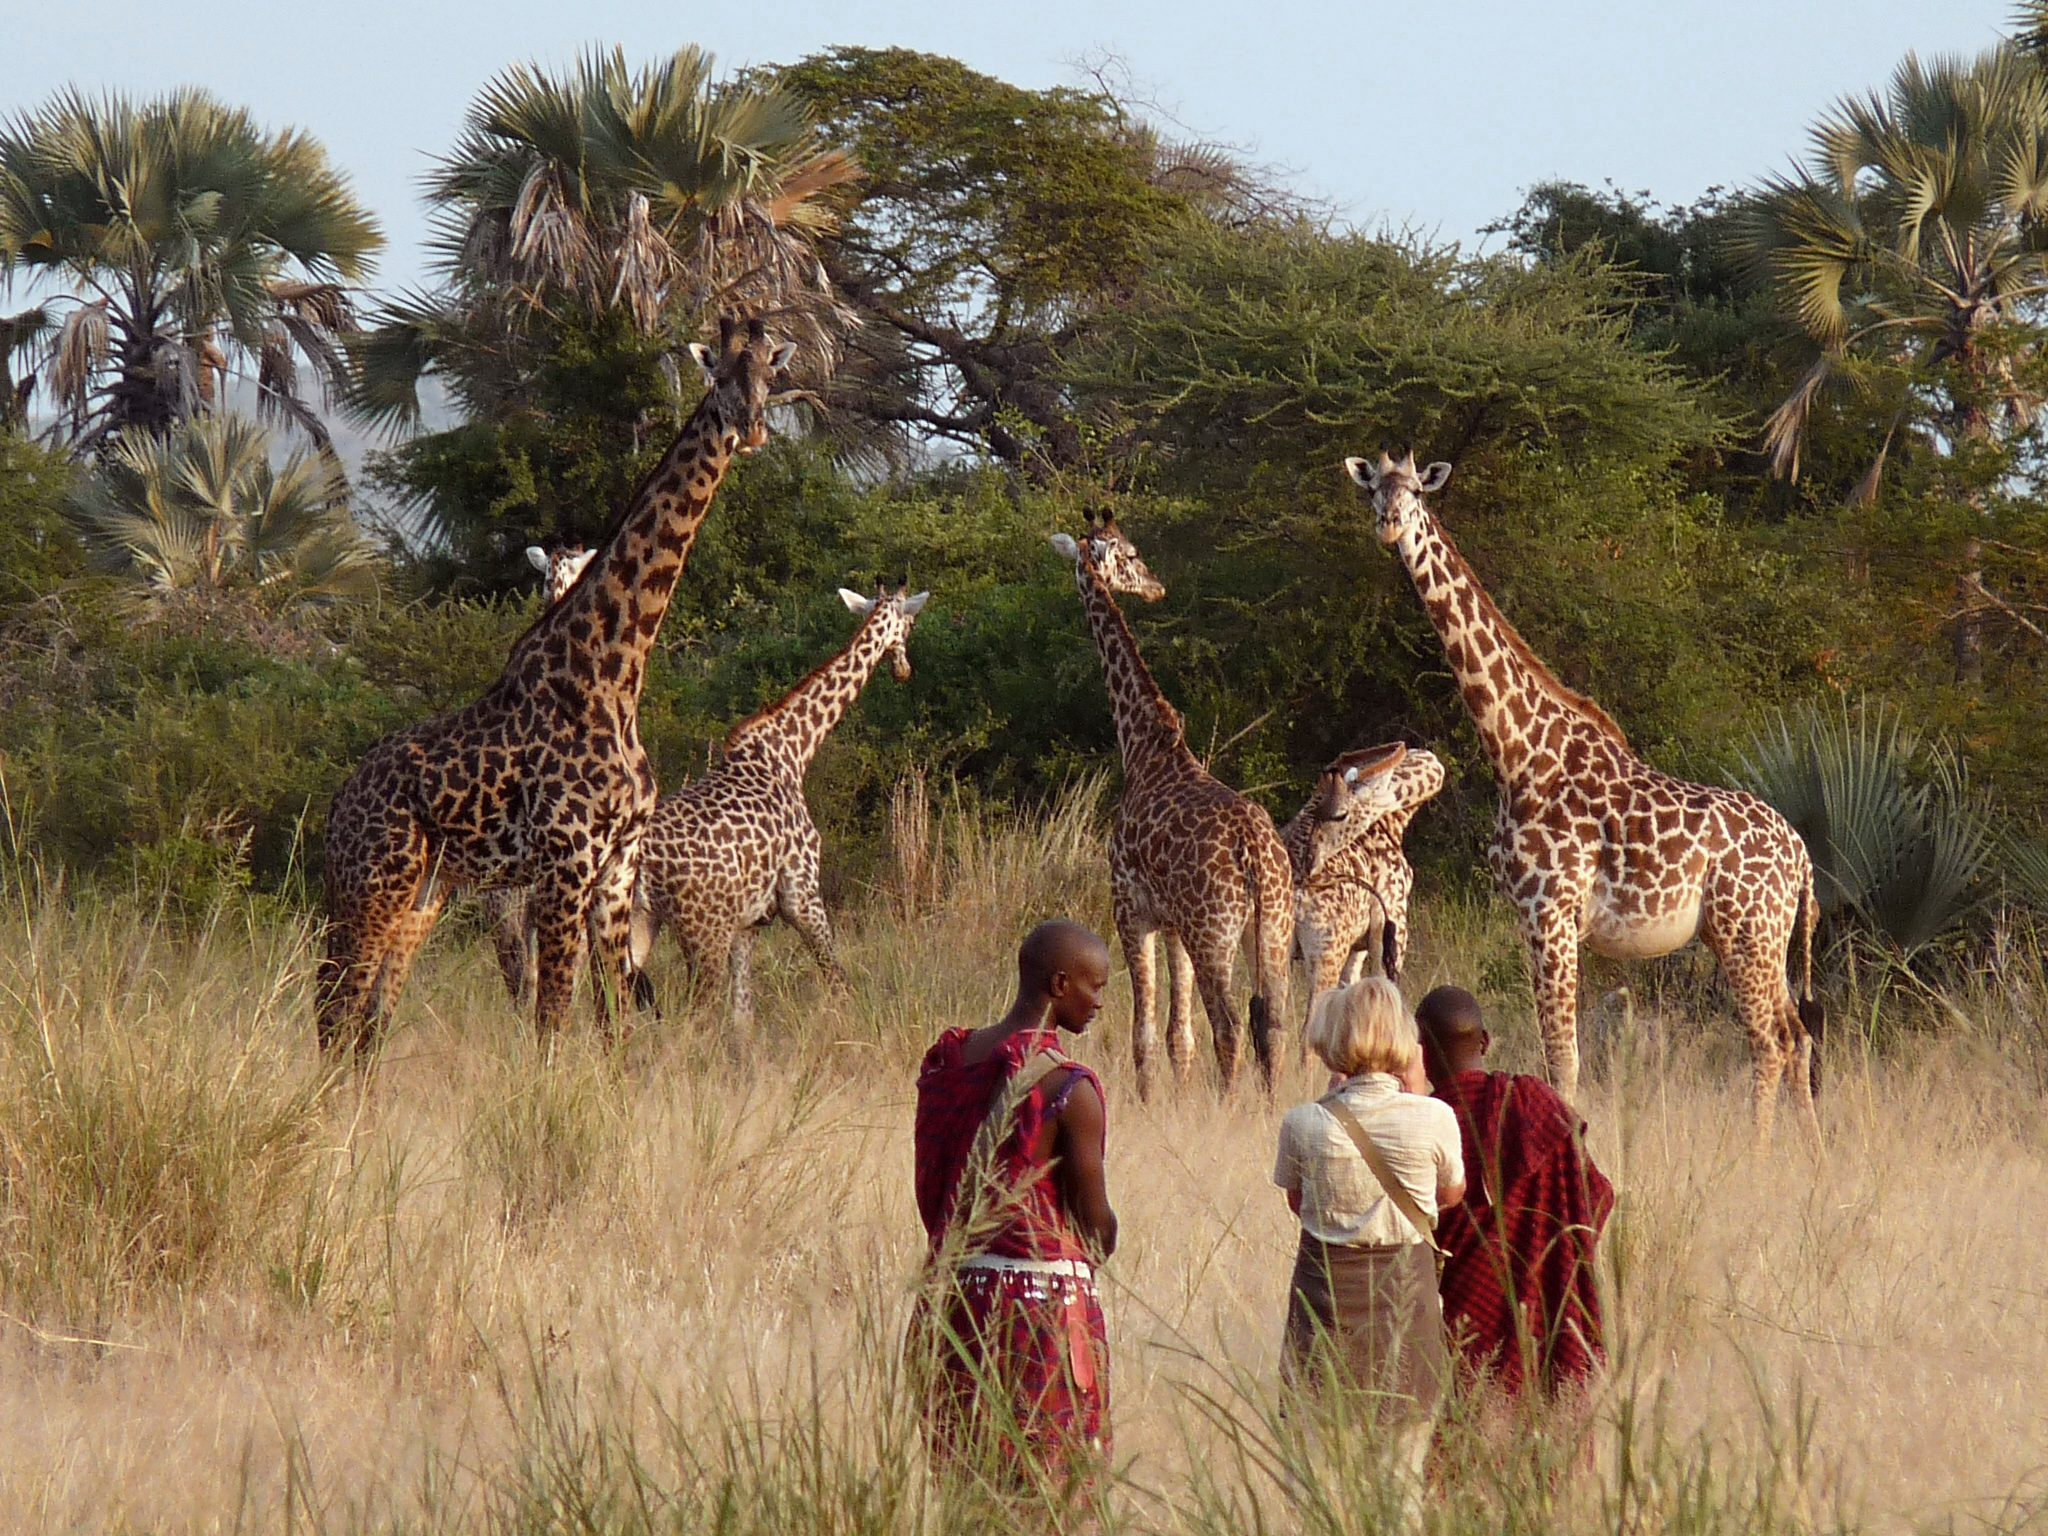 guest on foot with two Maasai guides taking a photo of our tower of giraffes on our luxury Tanzania safari